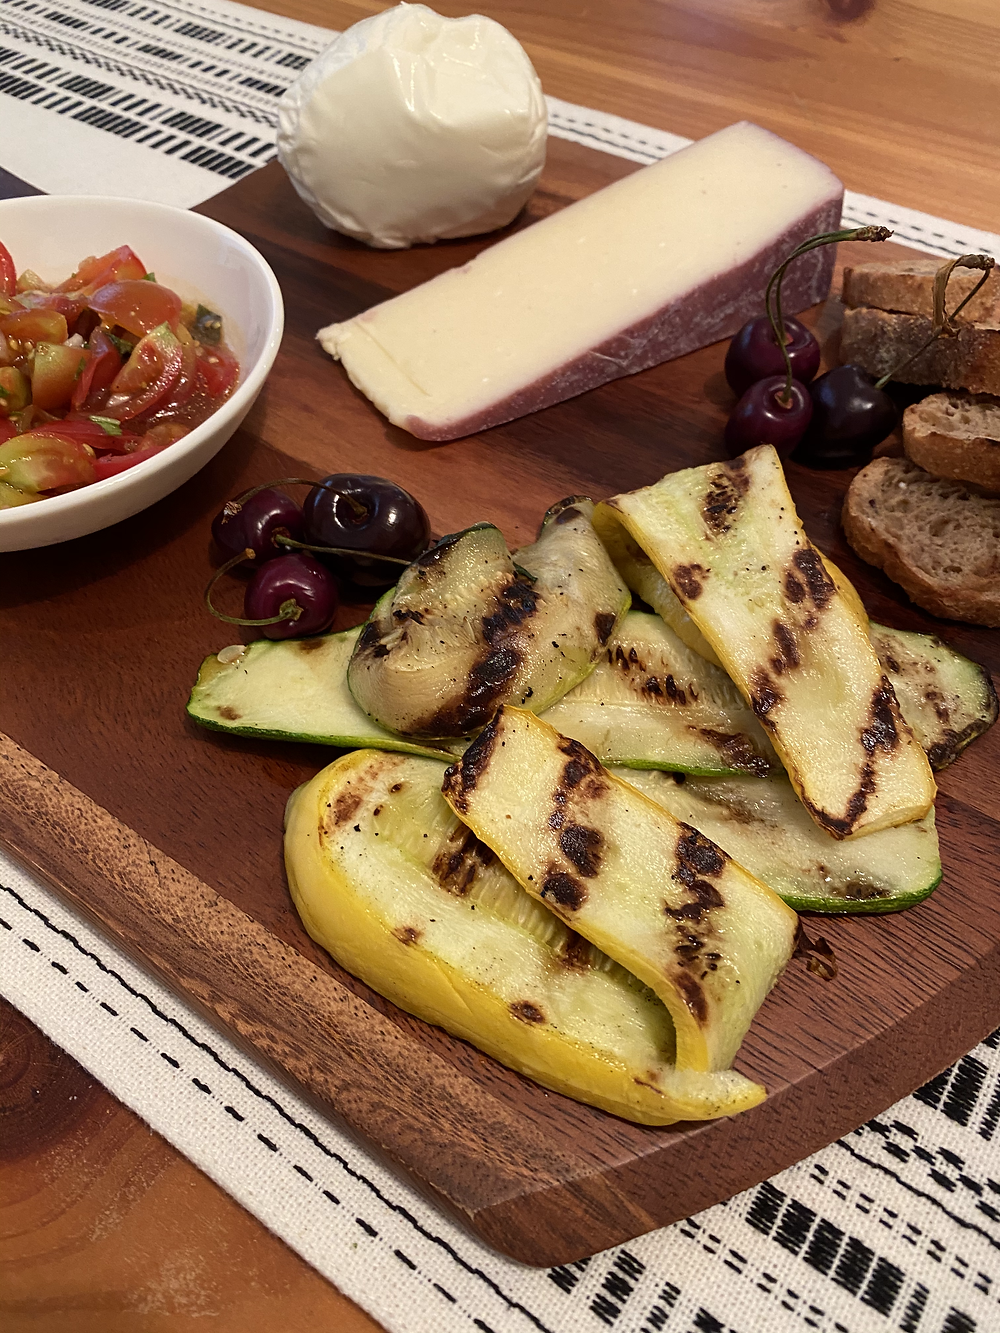 Picture of a platter with cheese, zucchini, whole grain baguette, cherries, and balsamic tomato bruchetta